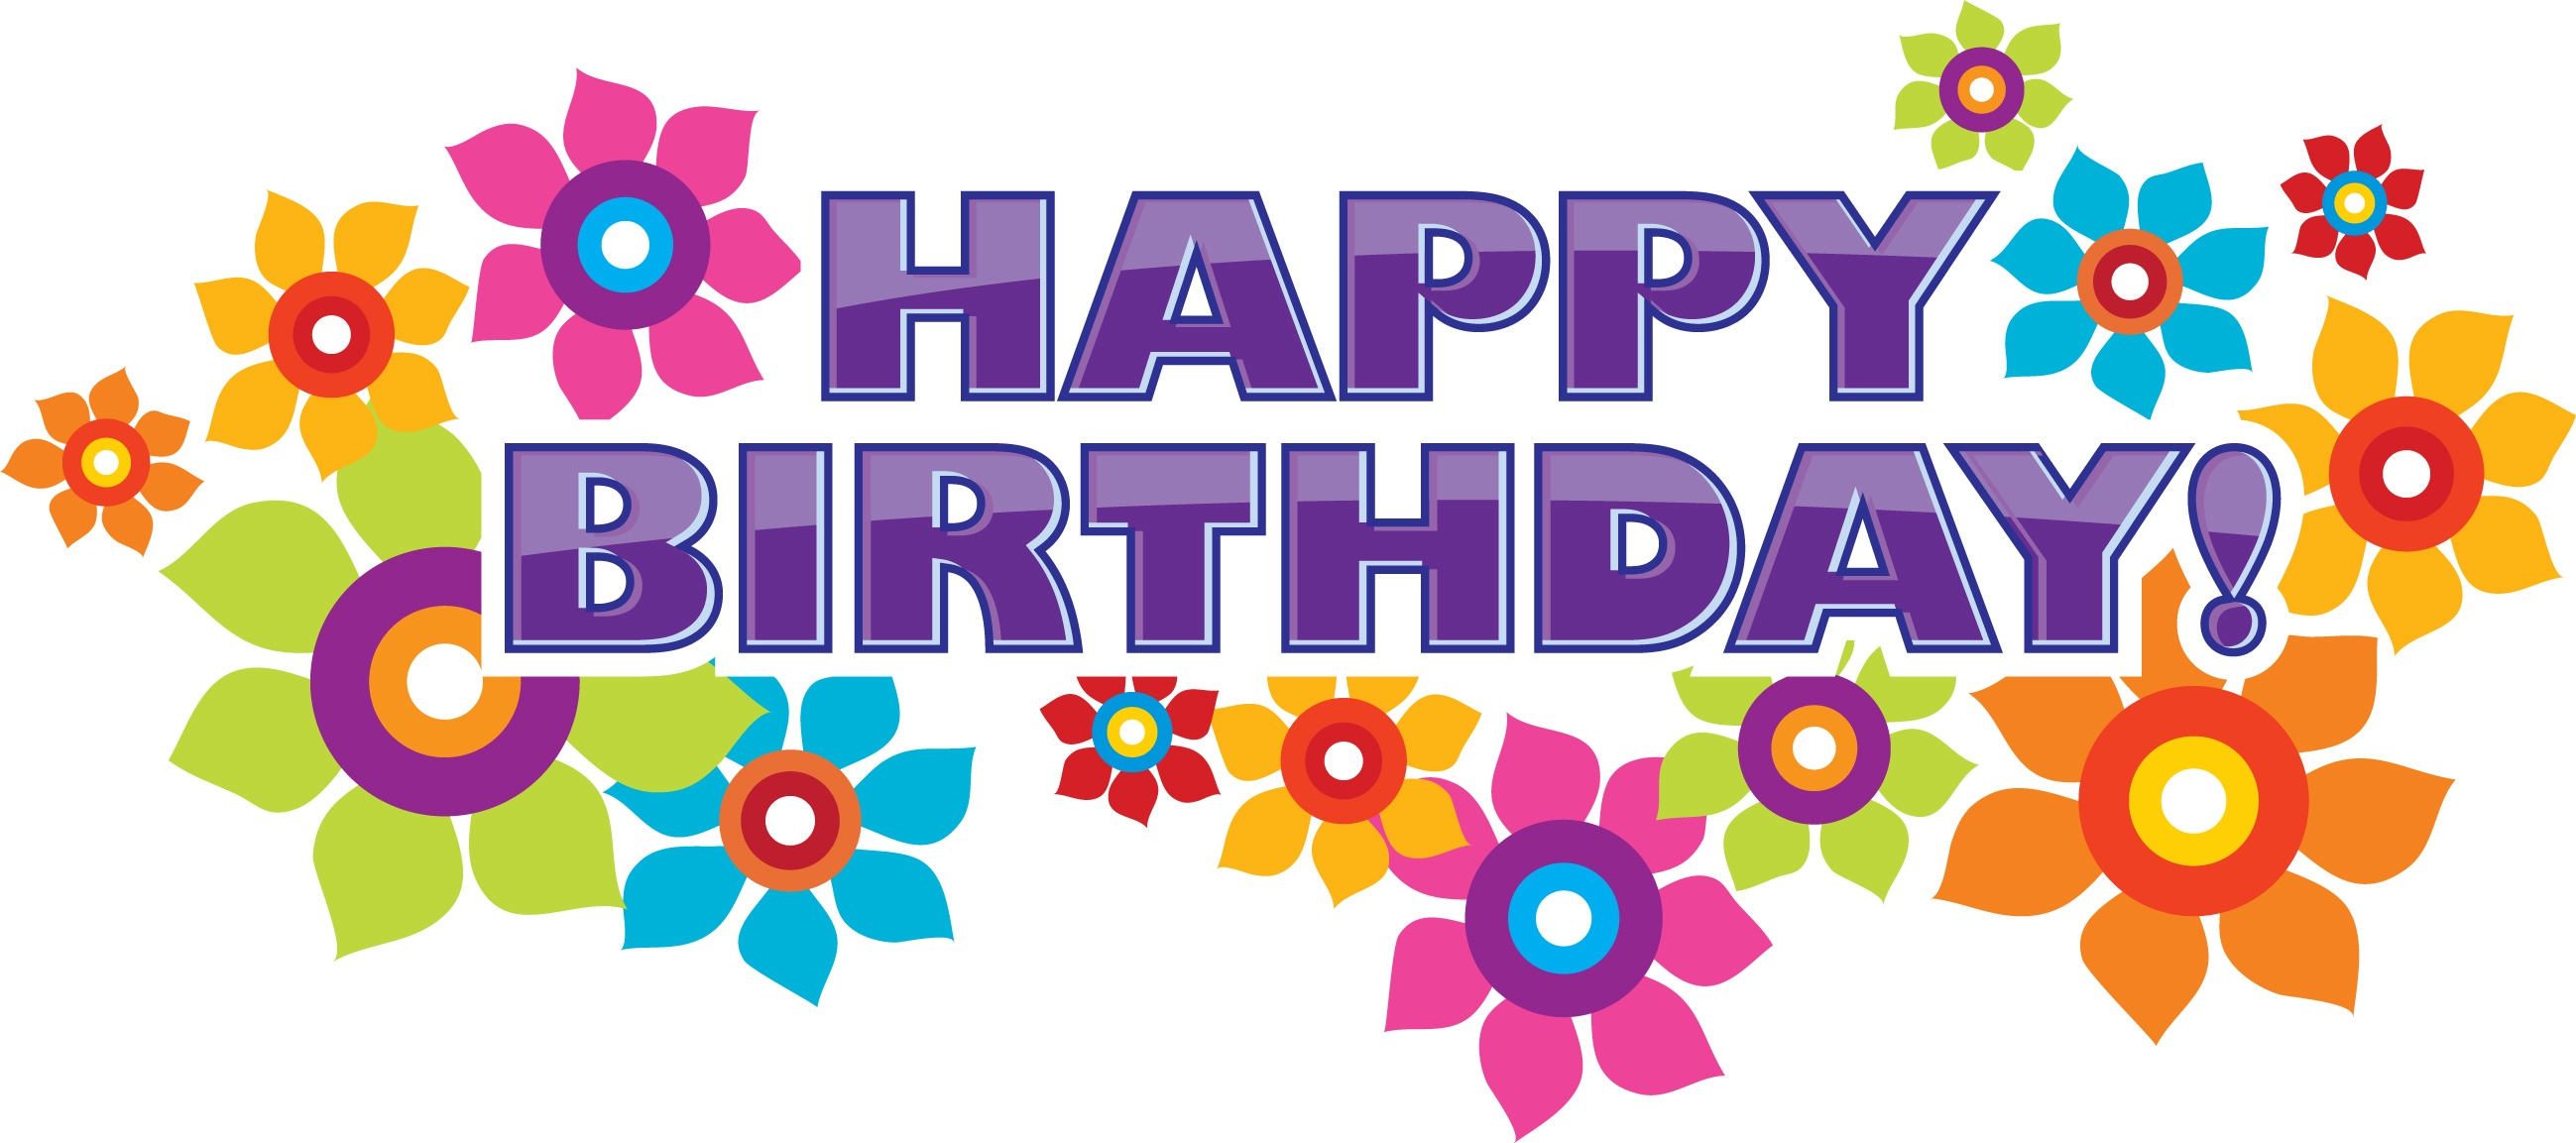 Free March Birthday Clipart, Download Free Clip Art, Free.